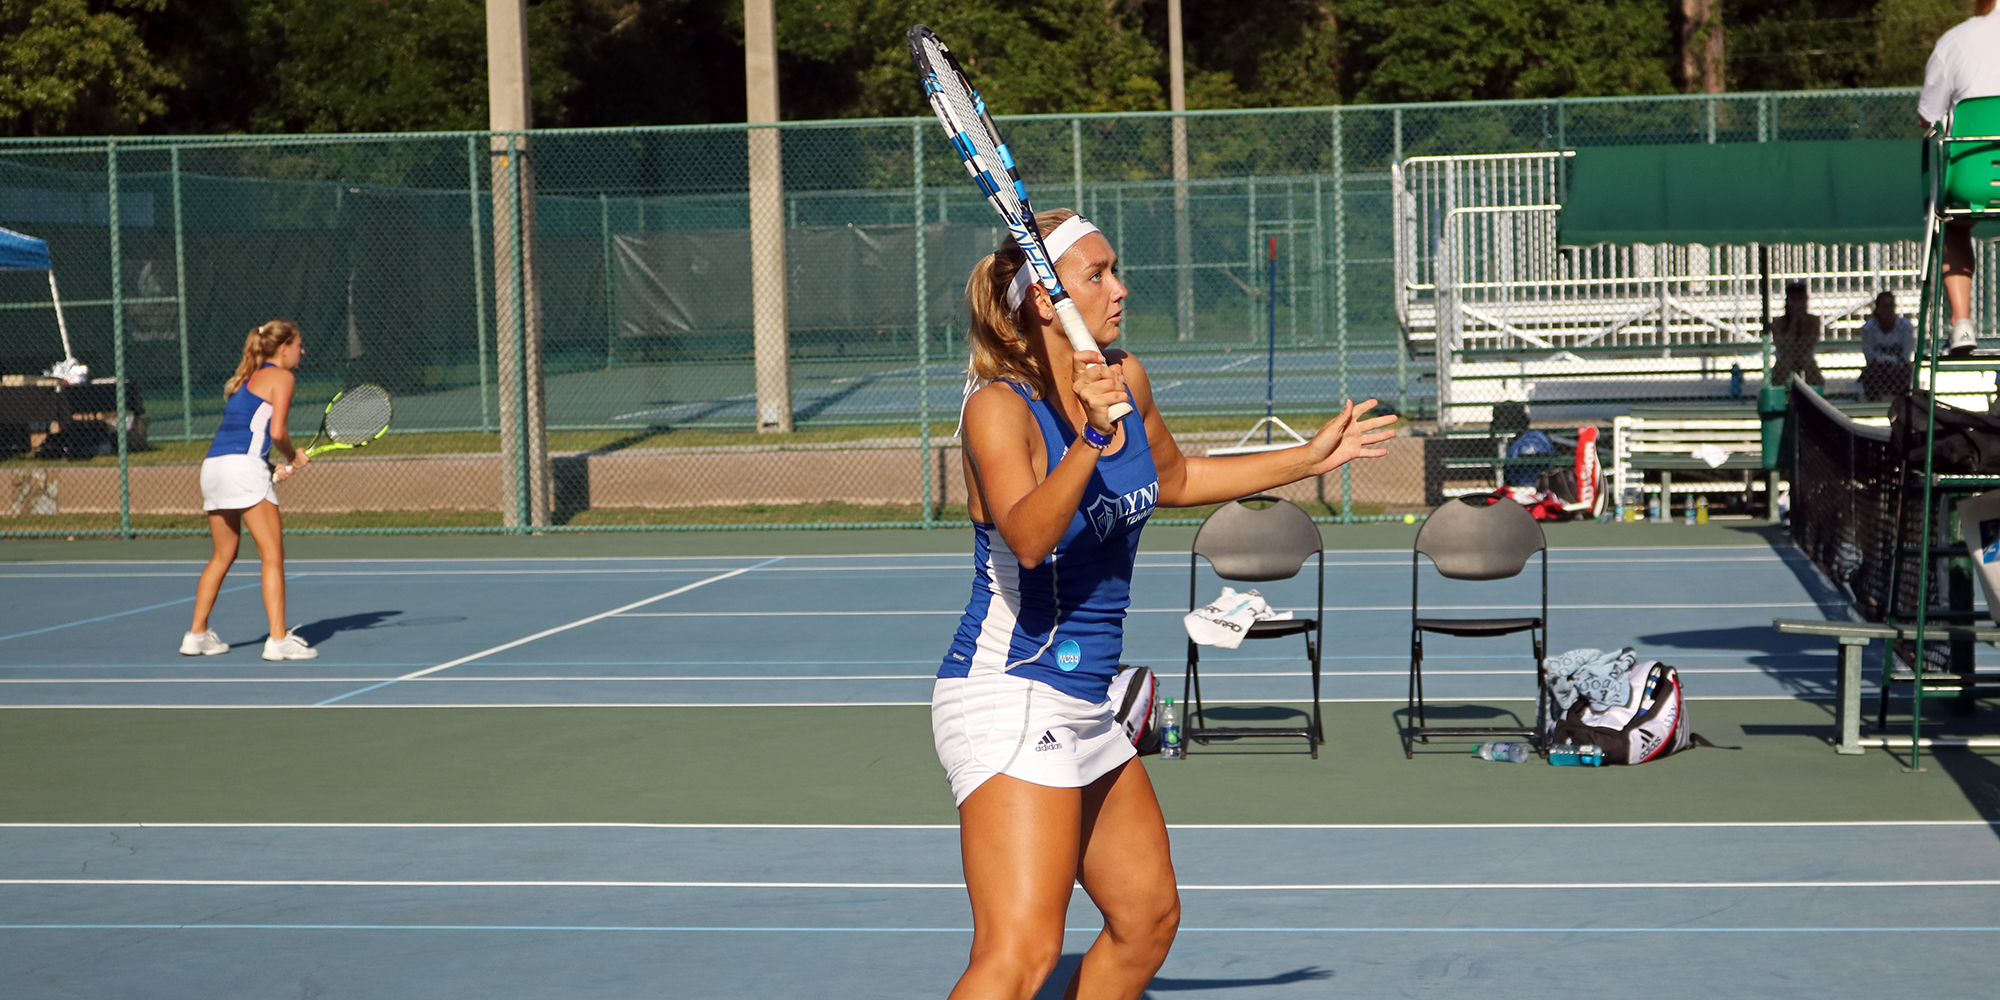 Bogolii & Abaza Take Third in Division II at ITA Oracle Cup